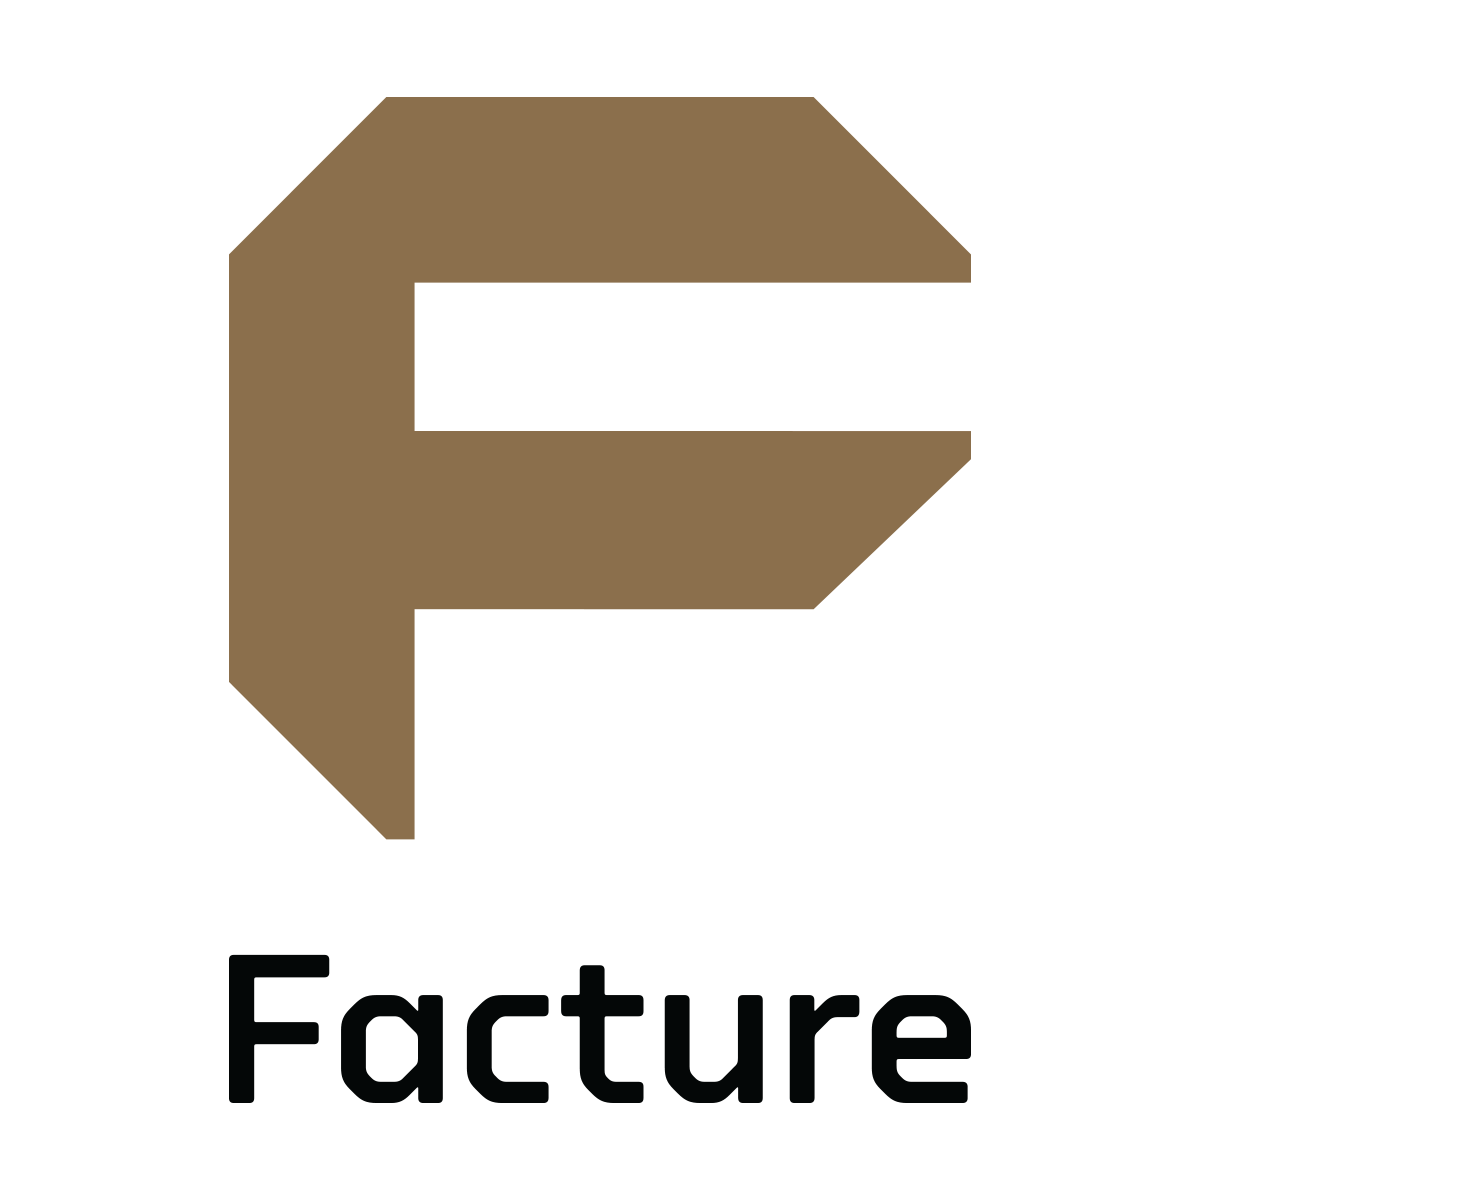 Facture - Lean Product Development - As much of this work is ongoing/in development I cannot post specific project details. As projects are completed, more context will be added.I am currently a mechanical engineer at Facture where, as part of a varied team of engineers and designers, I assist our clients to design, develop, and prototype their devices. I have taken on roles as the primary mechanical engineer for several projects, and as project manager for mechanical, electrical, firmware and industrial design teams.